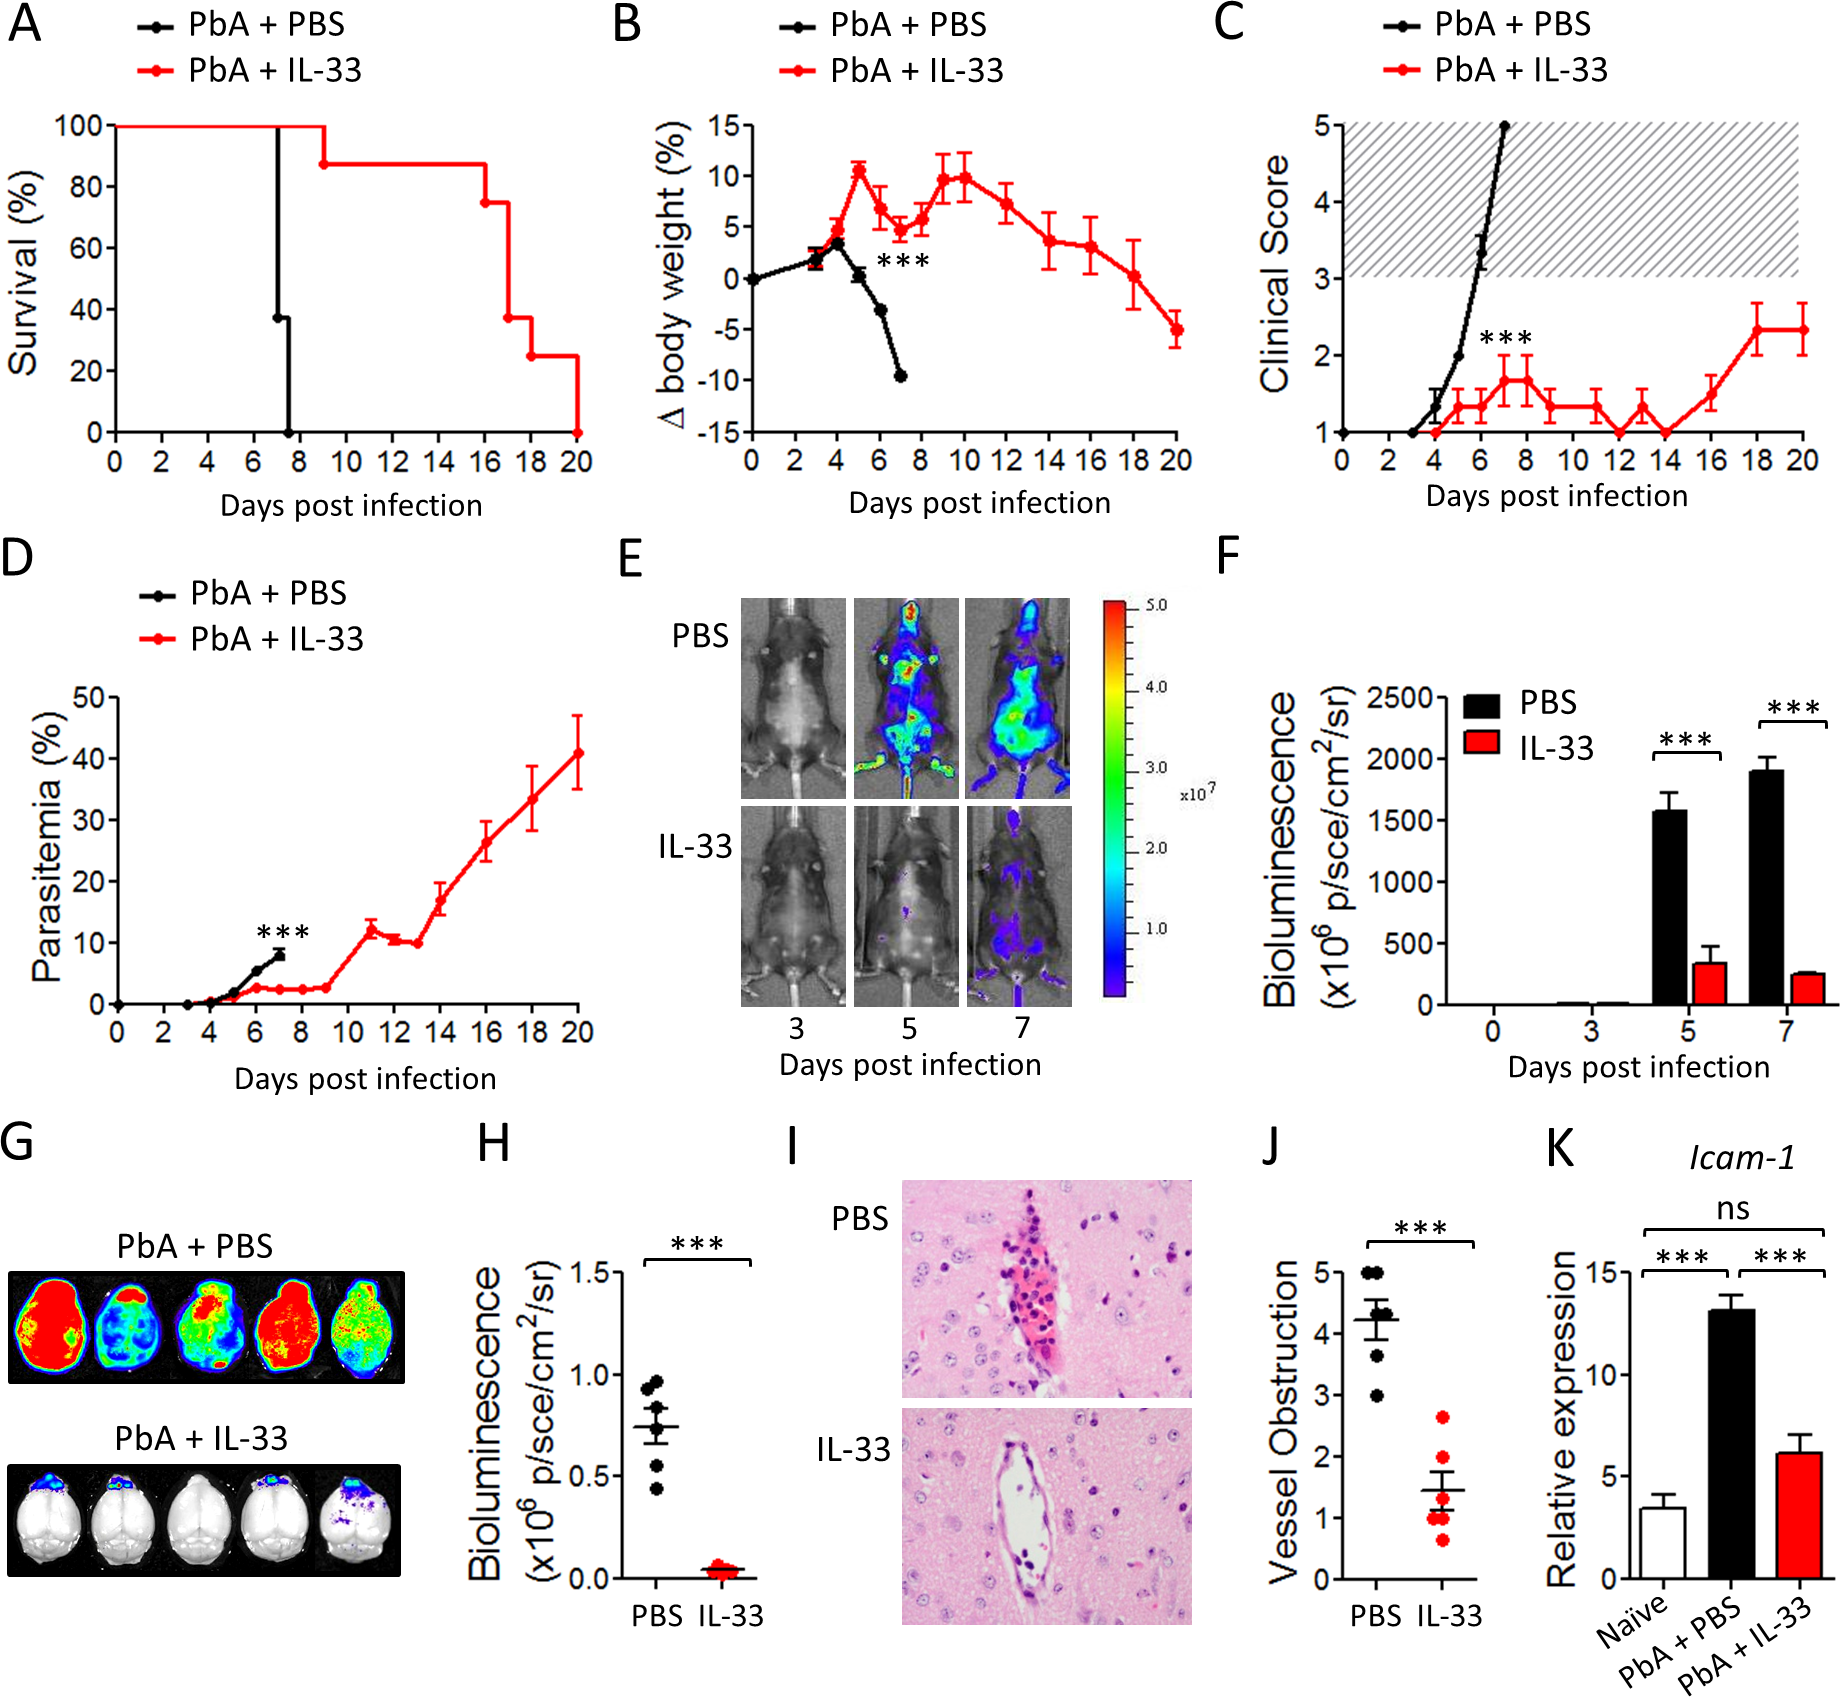 IL-33 protects mice from PbA-induced cerebral malaria.